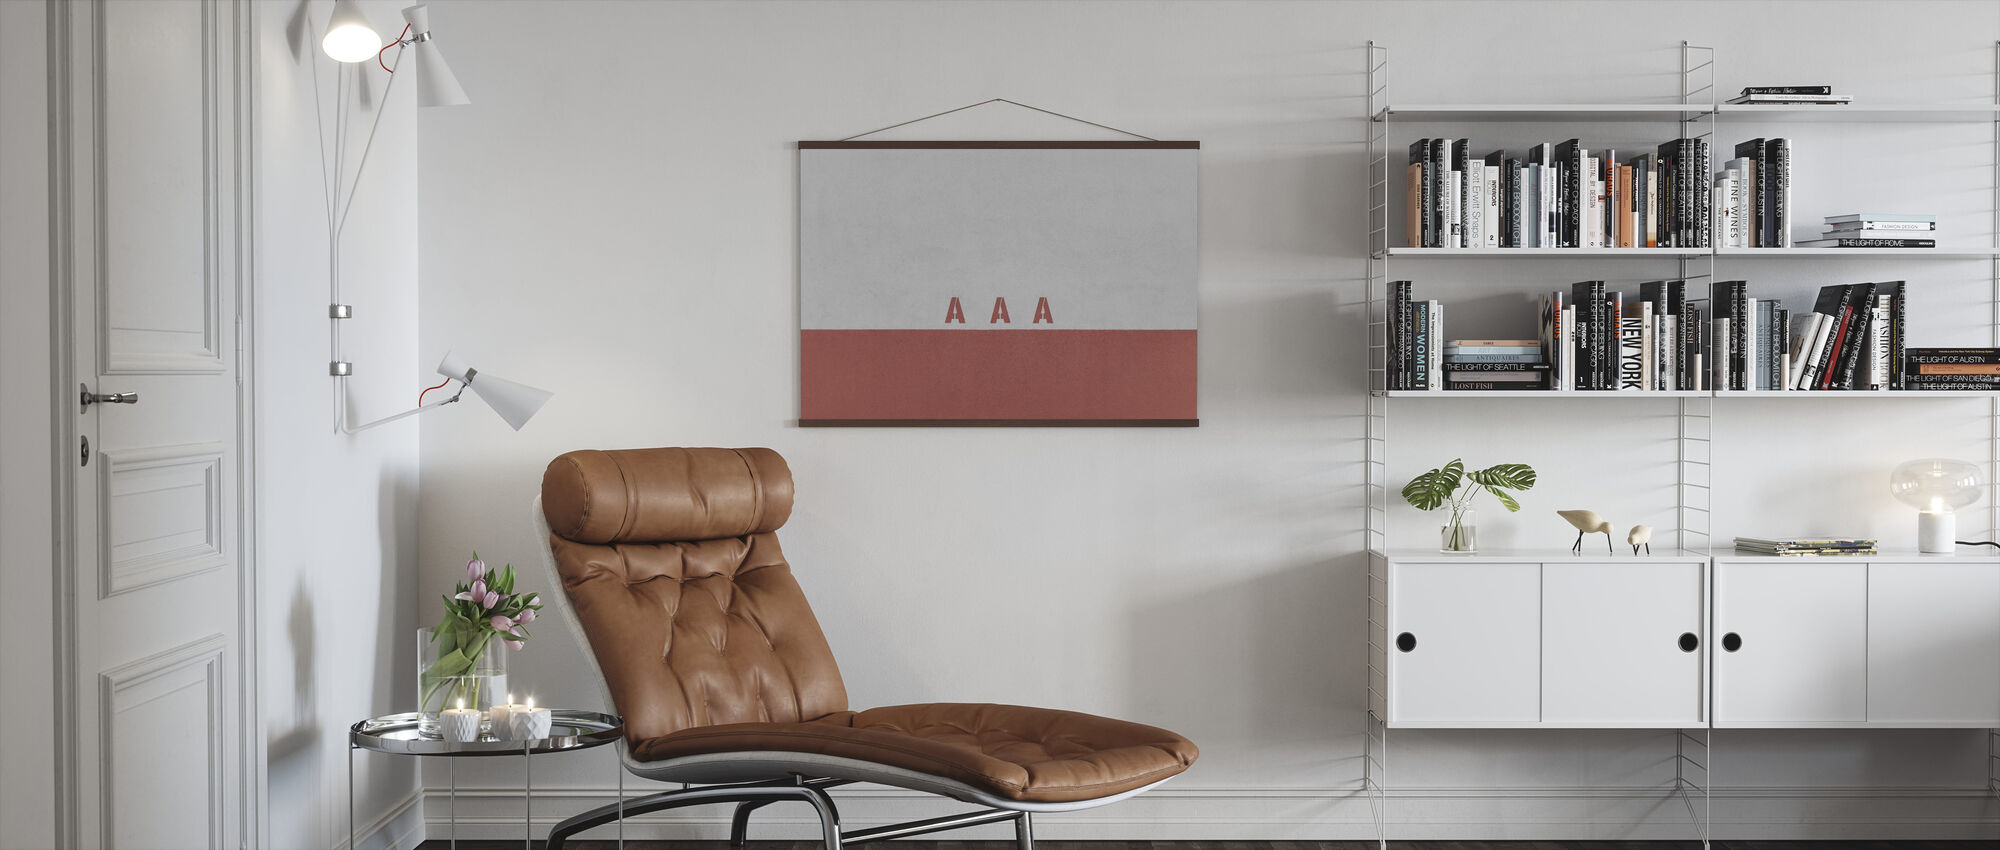 AAA Wall - Poster - Living Room